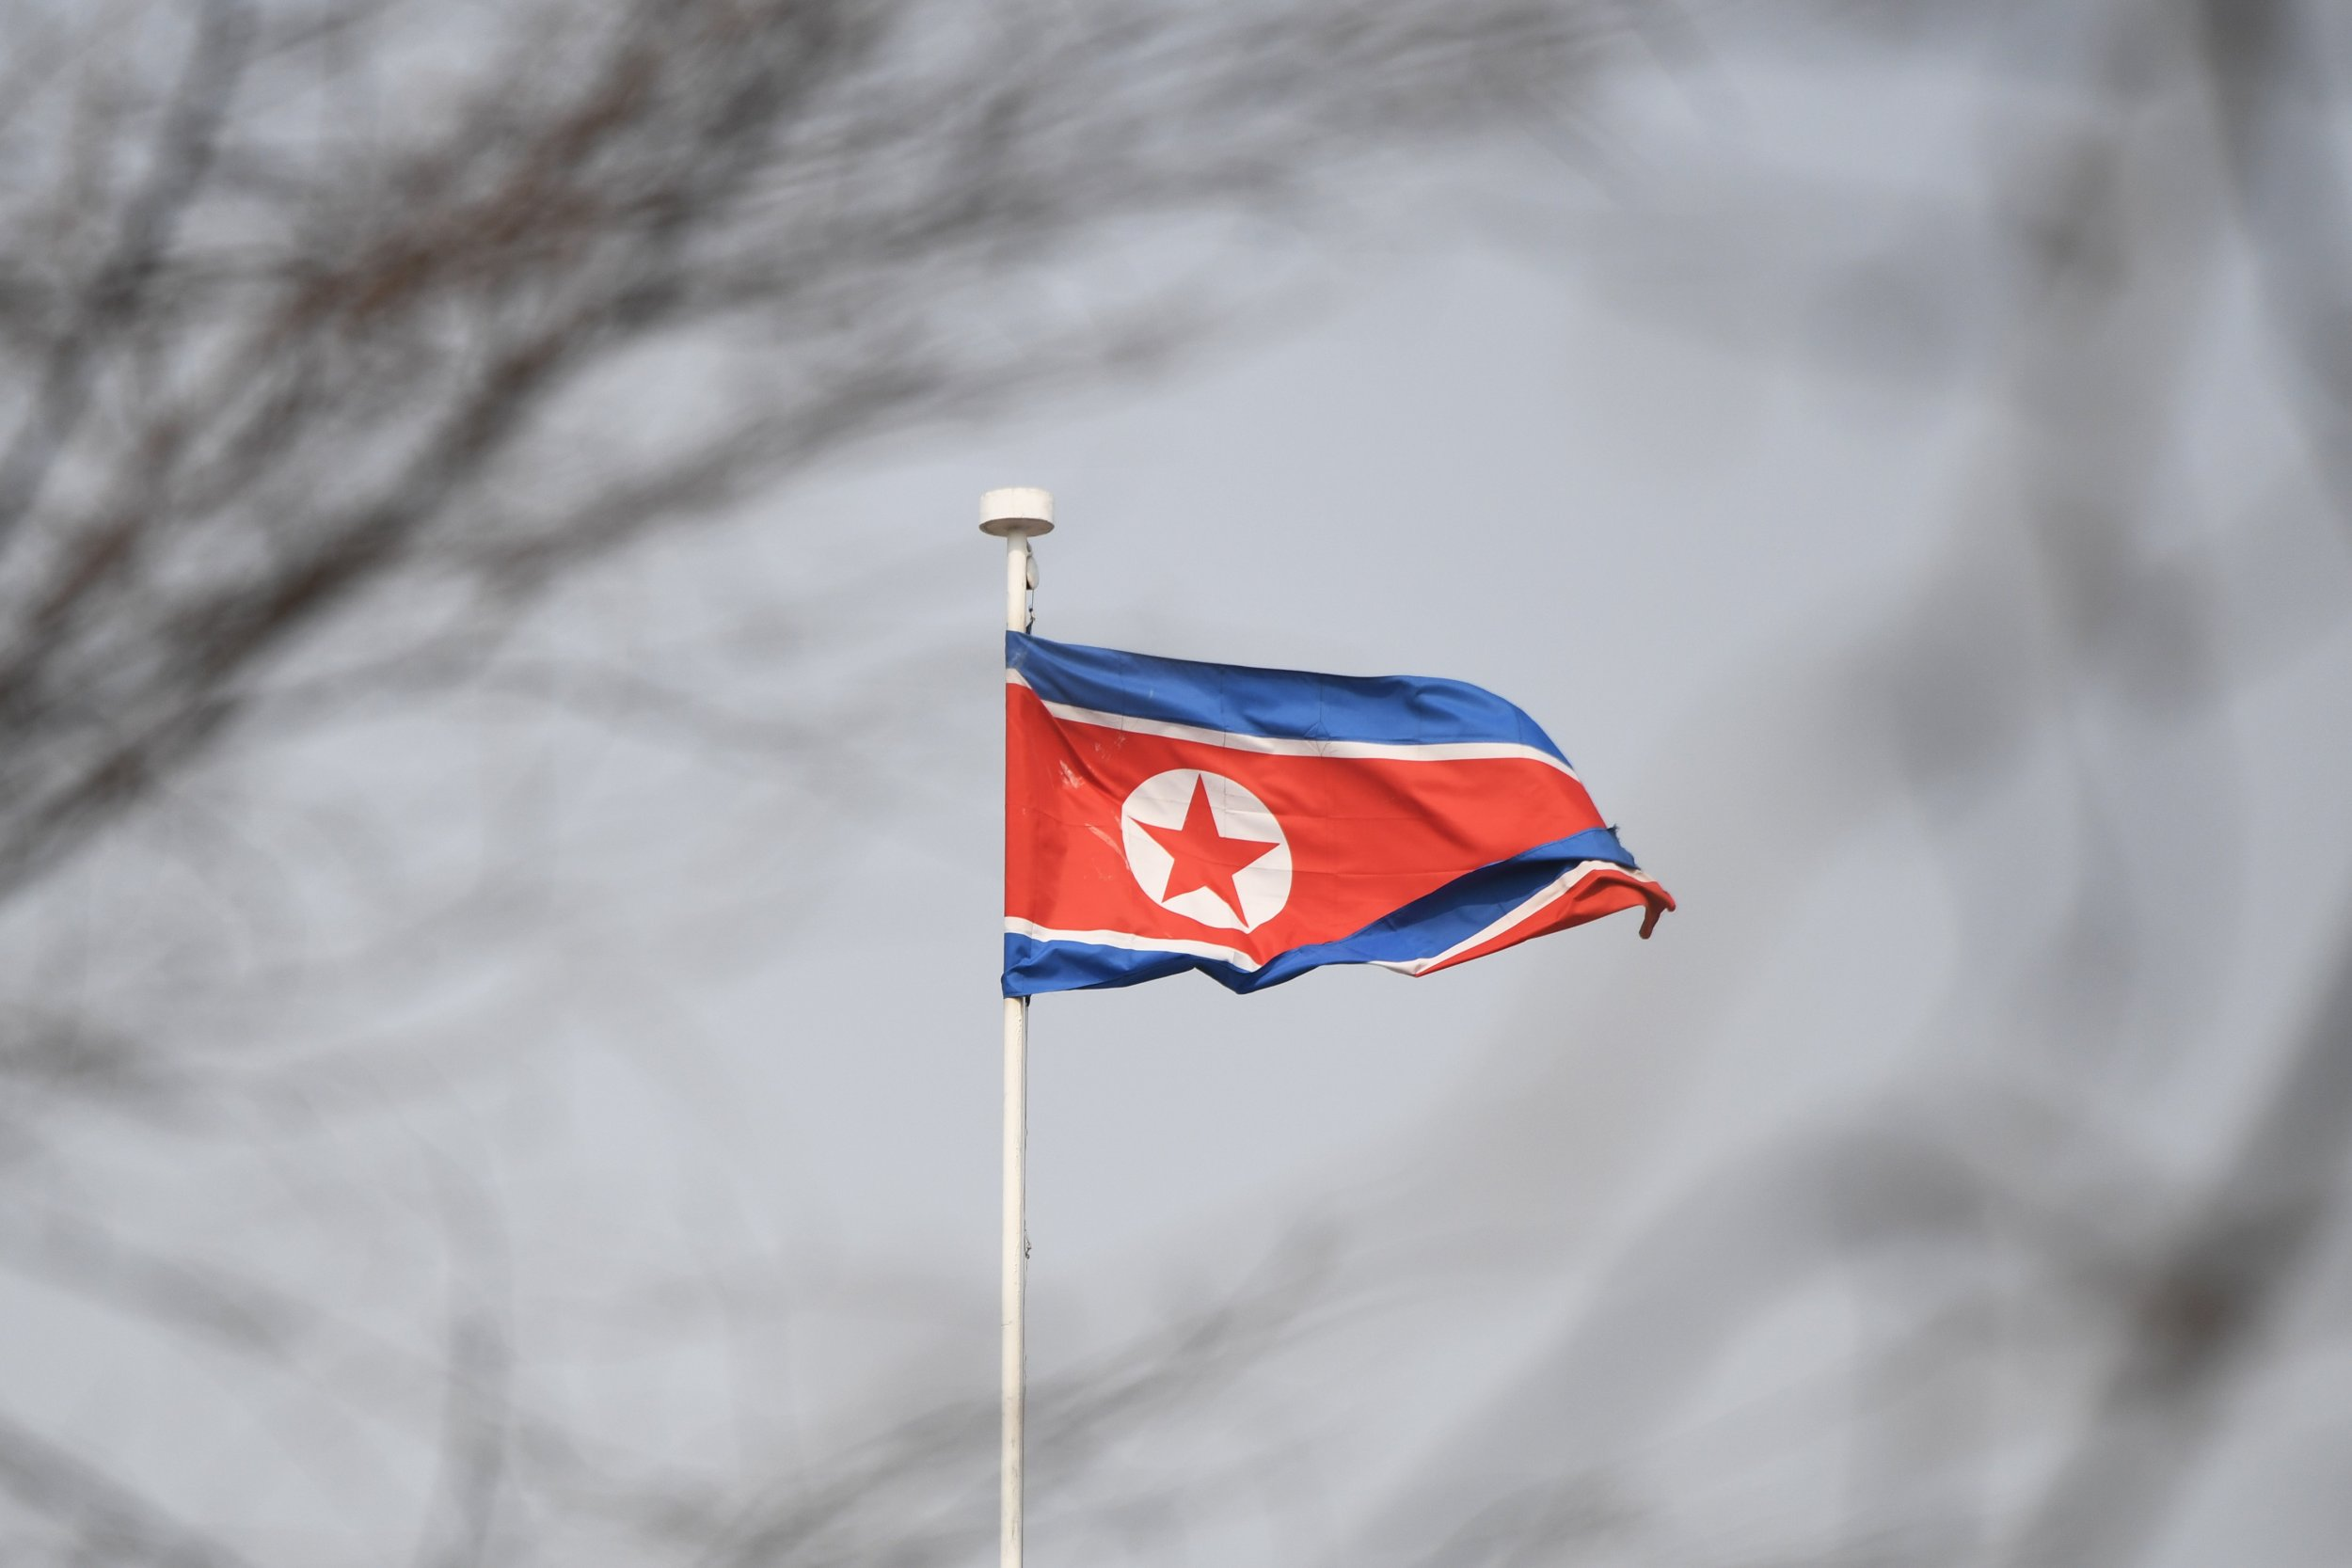 North Korean flag ambassador missing Italy